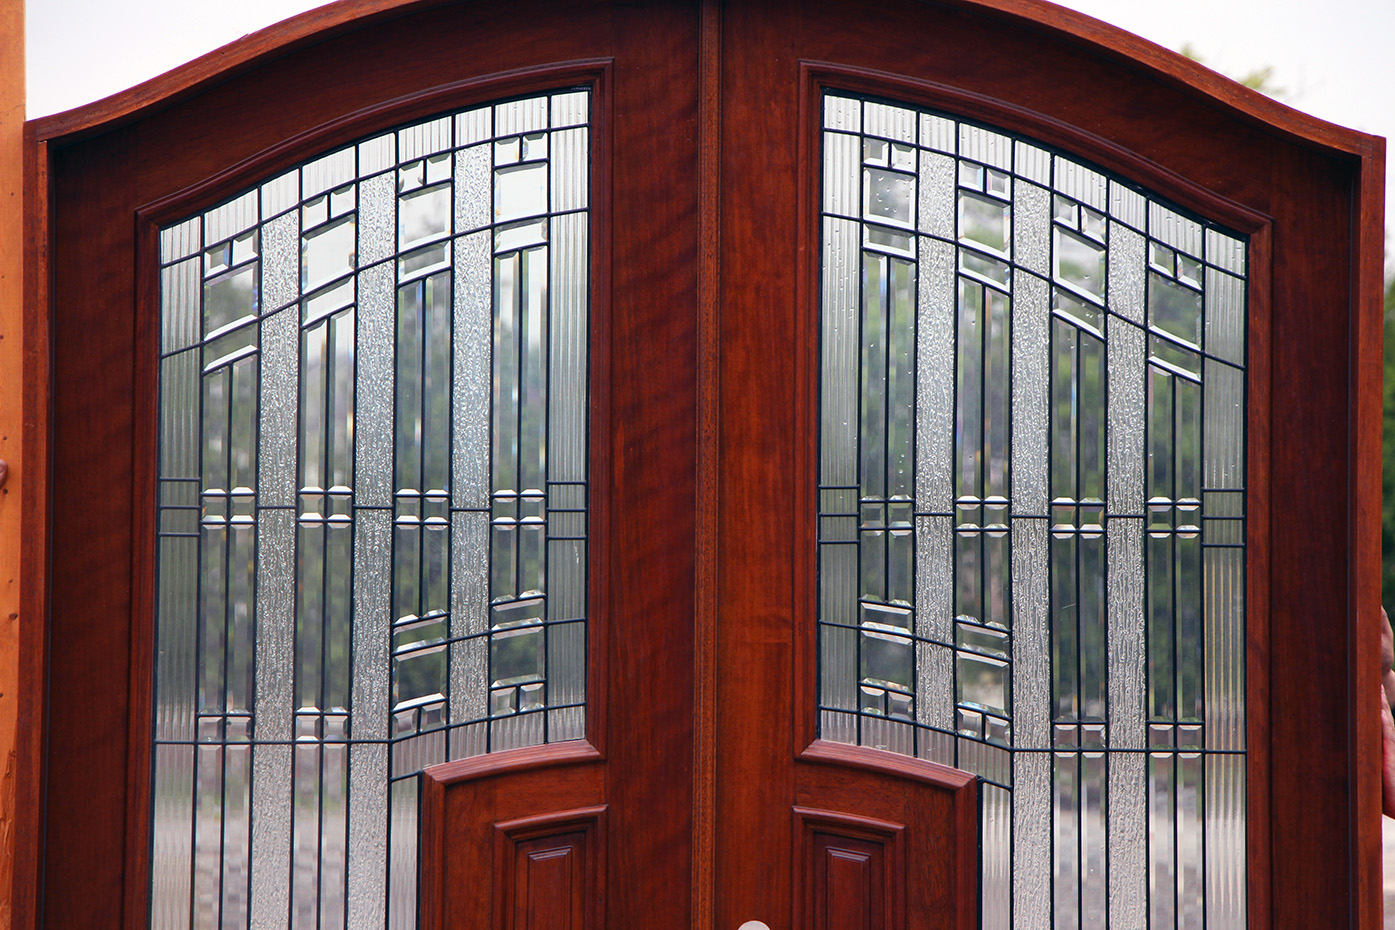 930 #6A241A African Mahogany Arched Top Double Doors pic Clearance Entry Doors 44311395